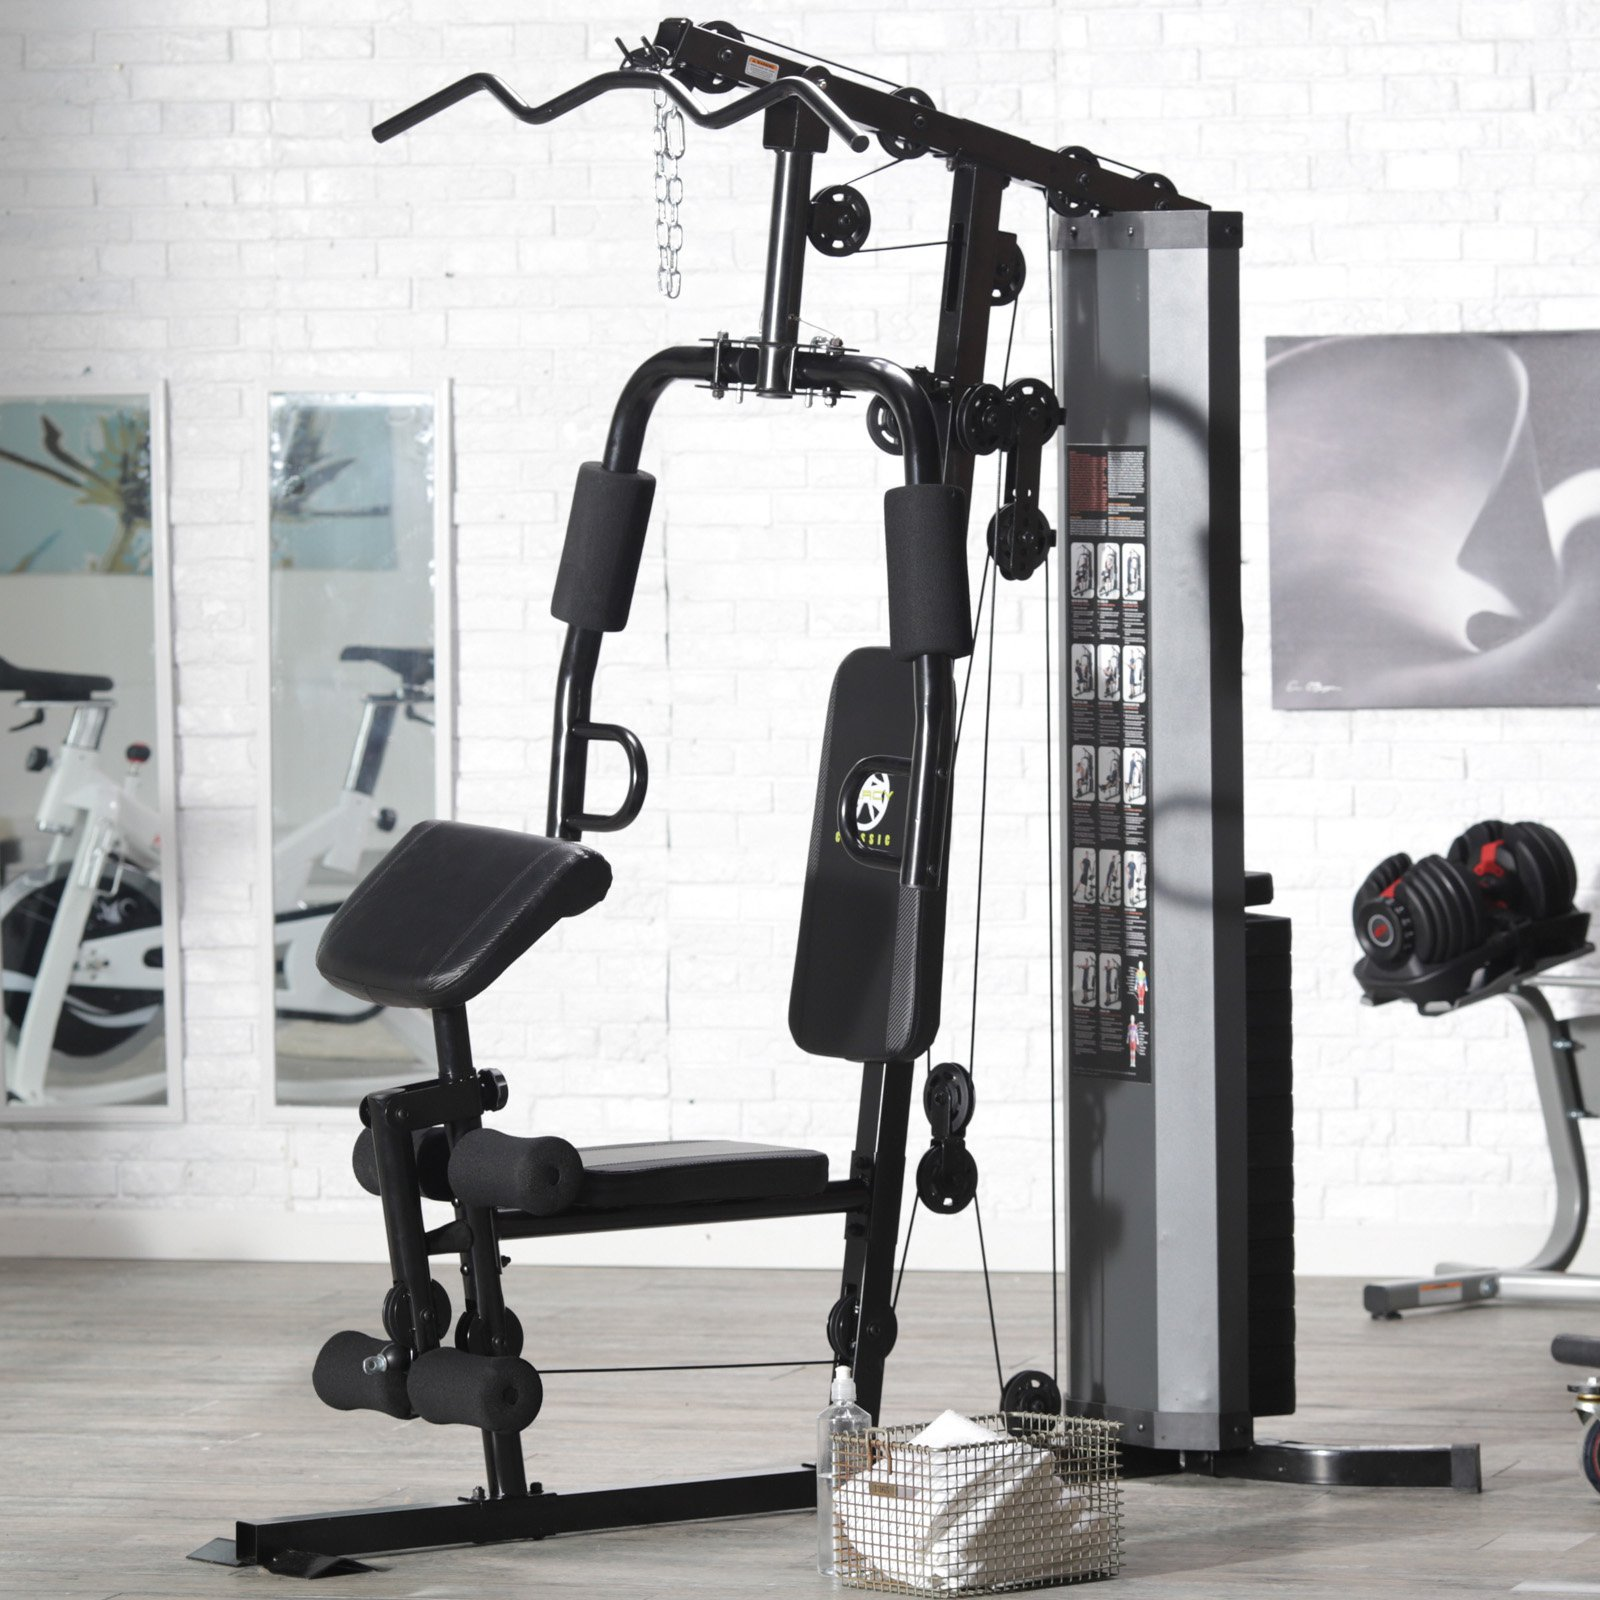 2017 Home Gym Review: Marcy 150 lb. Stack Home Gym